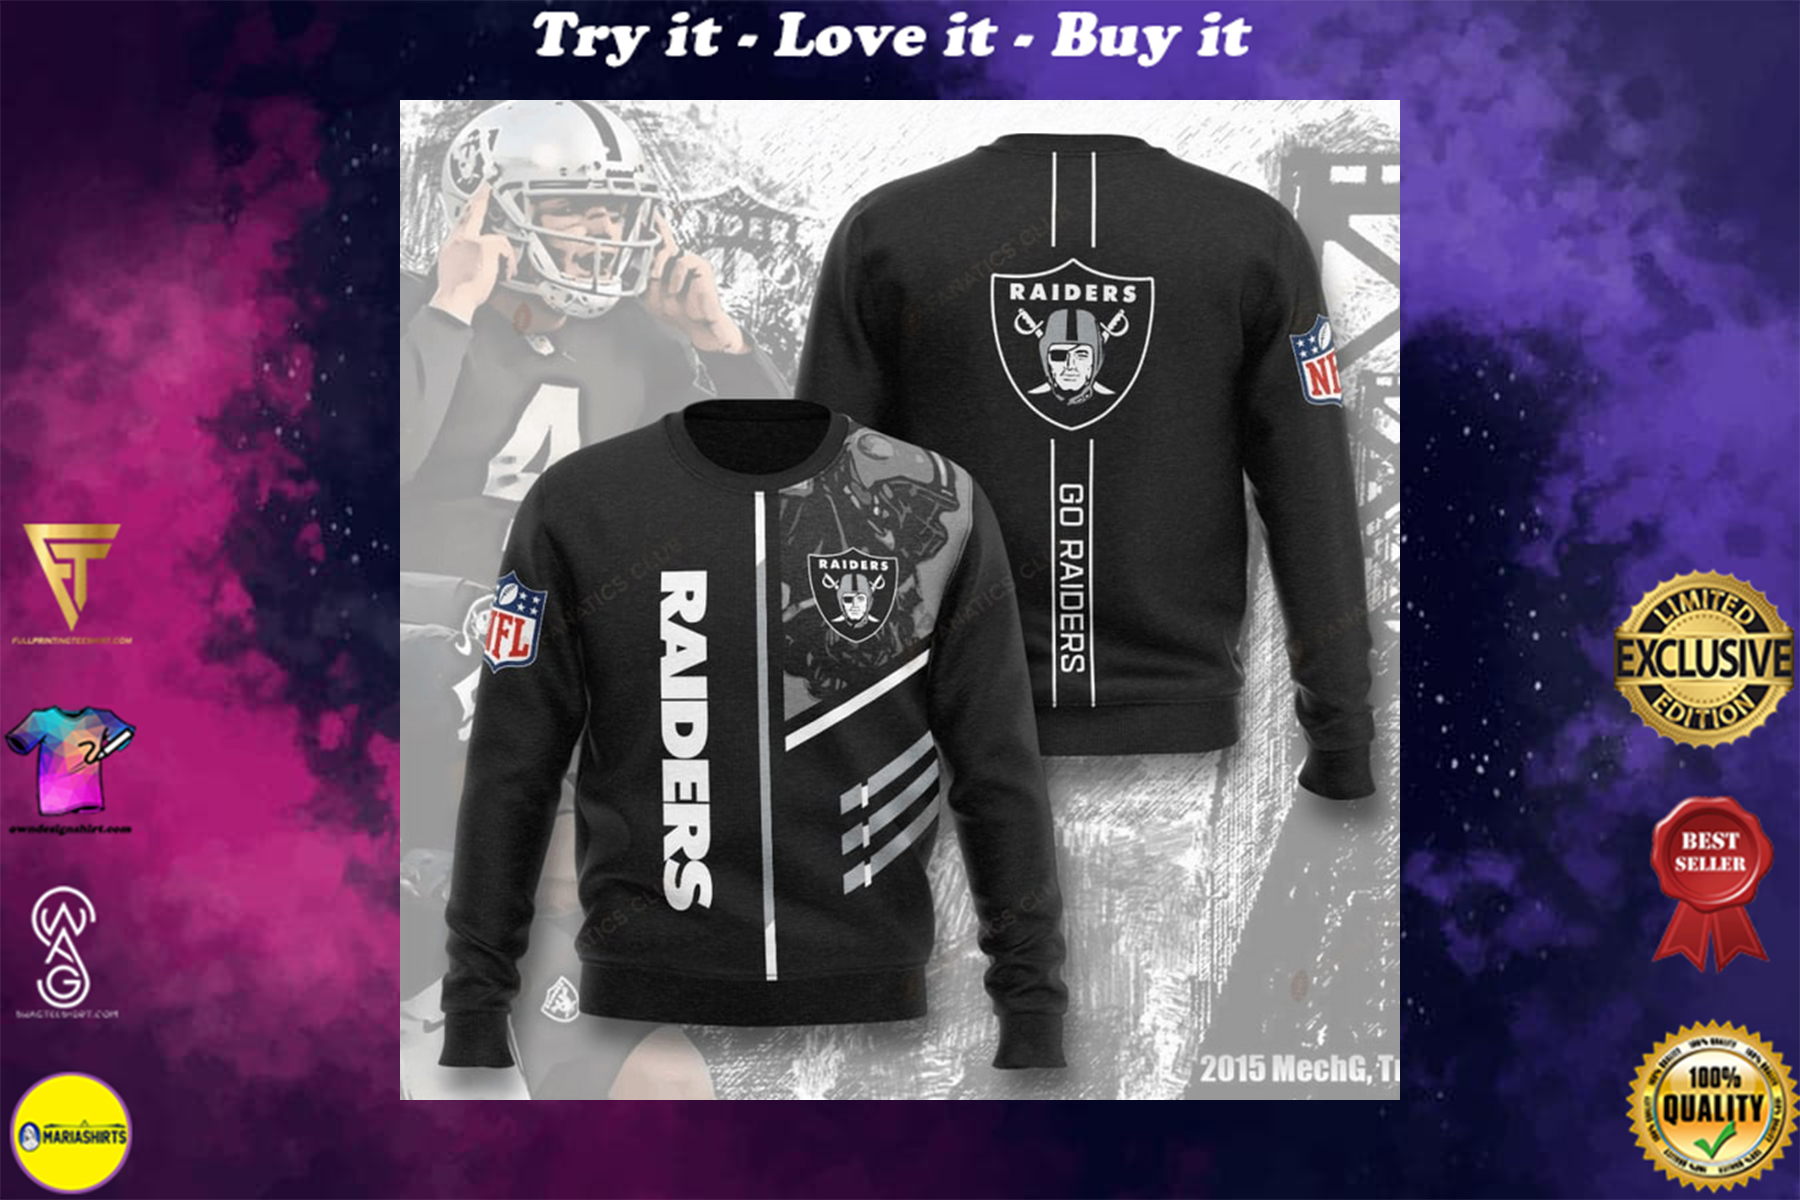 [special edition] national football league oakland raiders go raiders full printing ugly sweater - maria